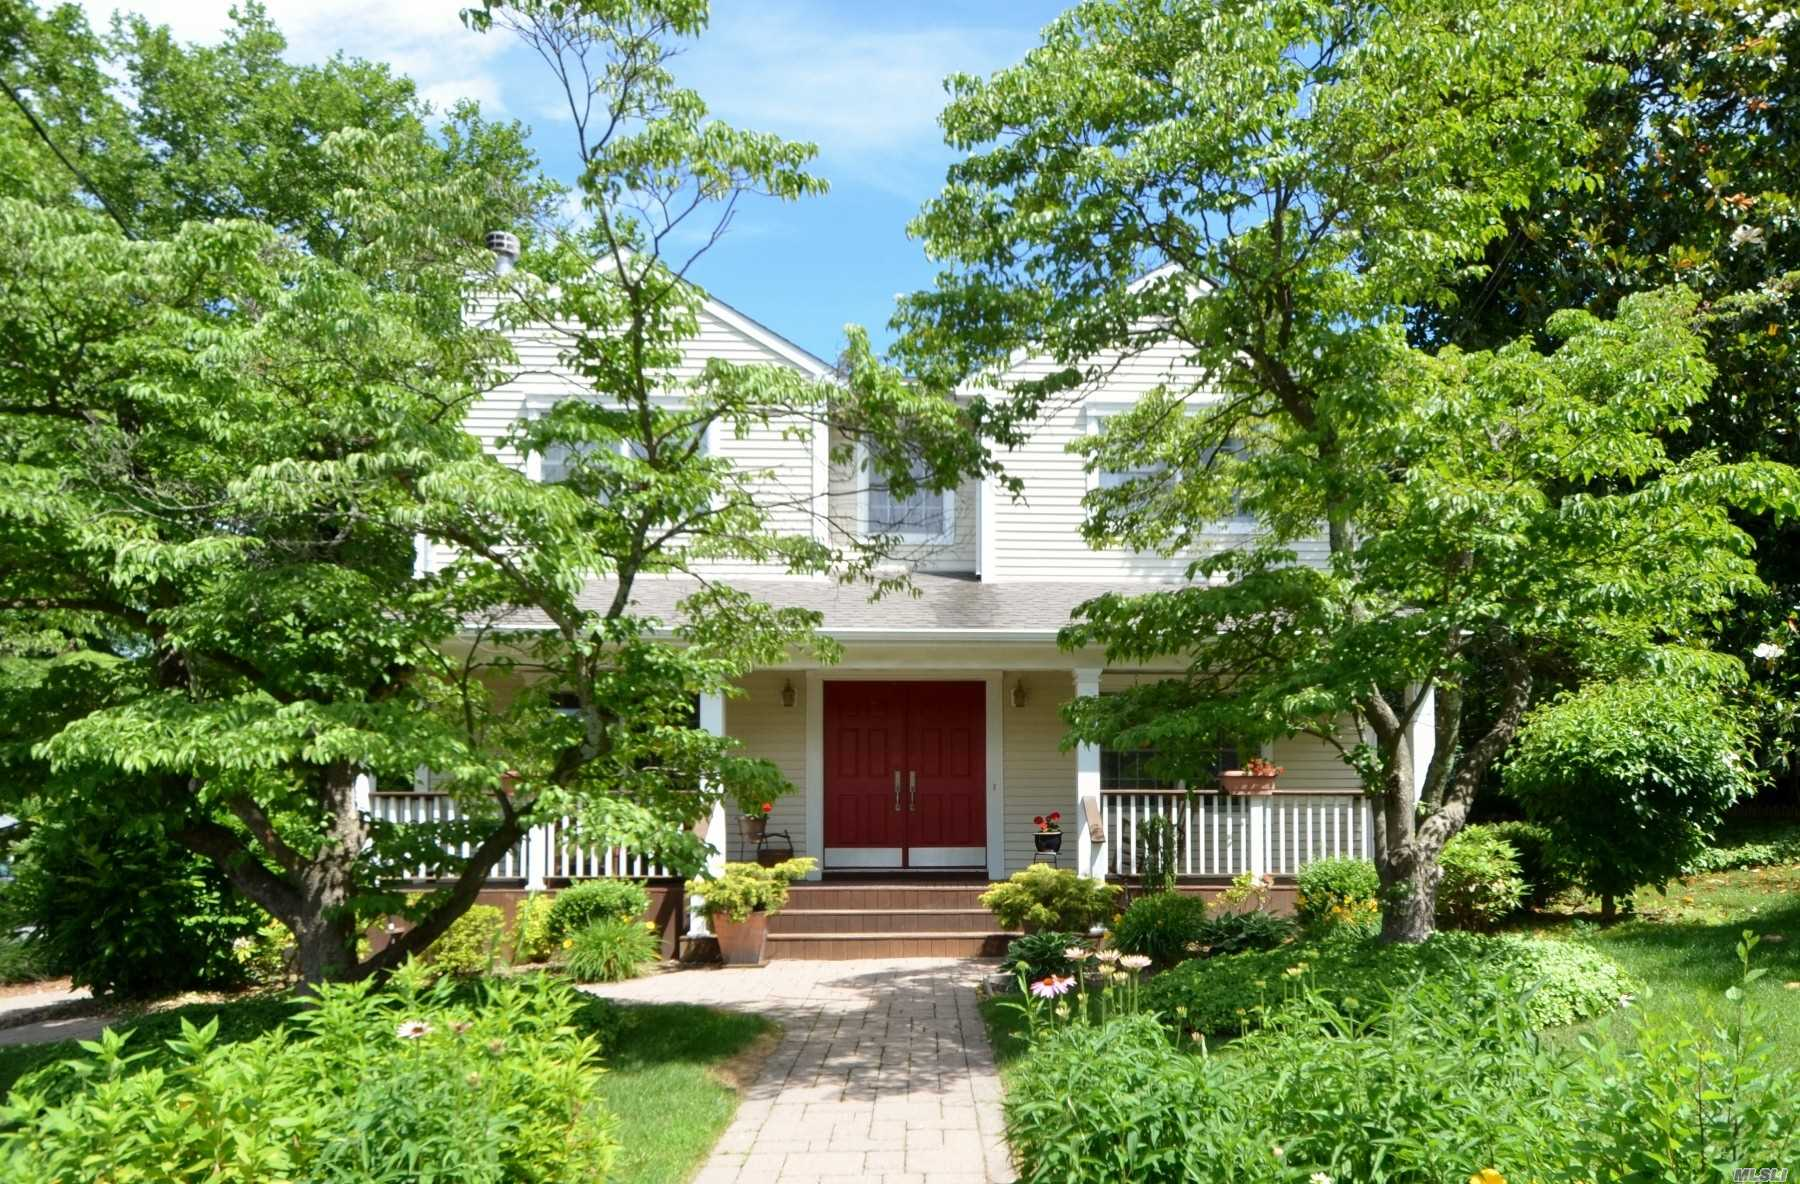 Proud To Show This Striking Colonial In Hill Terrace! Taken Down To Foundation In 2003. Front Porch, Ef, Lr W/Fpl, Fdr, Eik, Family Rm, 1/2 Bath, Mud Rm W/Washer/Dryer. 2nd Floor; Sitting Rm/Open Area, Master Bdrm Ste Including Full Bath W/Jacuzzi Tub & Walk In Closet, 2 Addl Bdrms, & Full Bath. Wonderful Yard W/Patio & Deck. A Must See!!